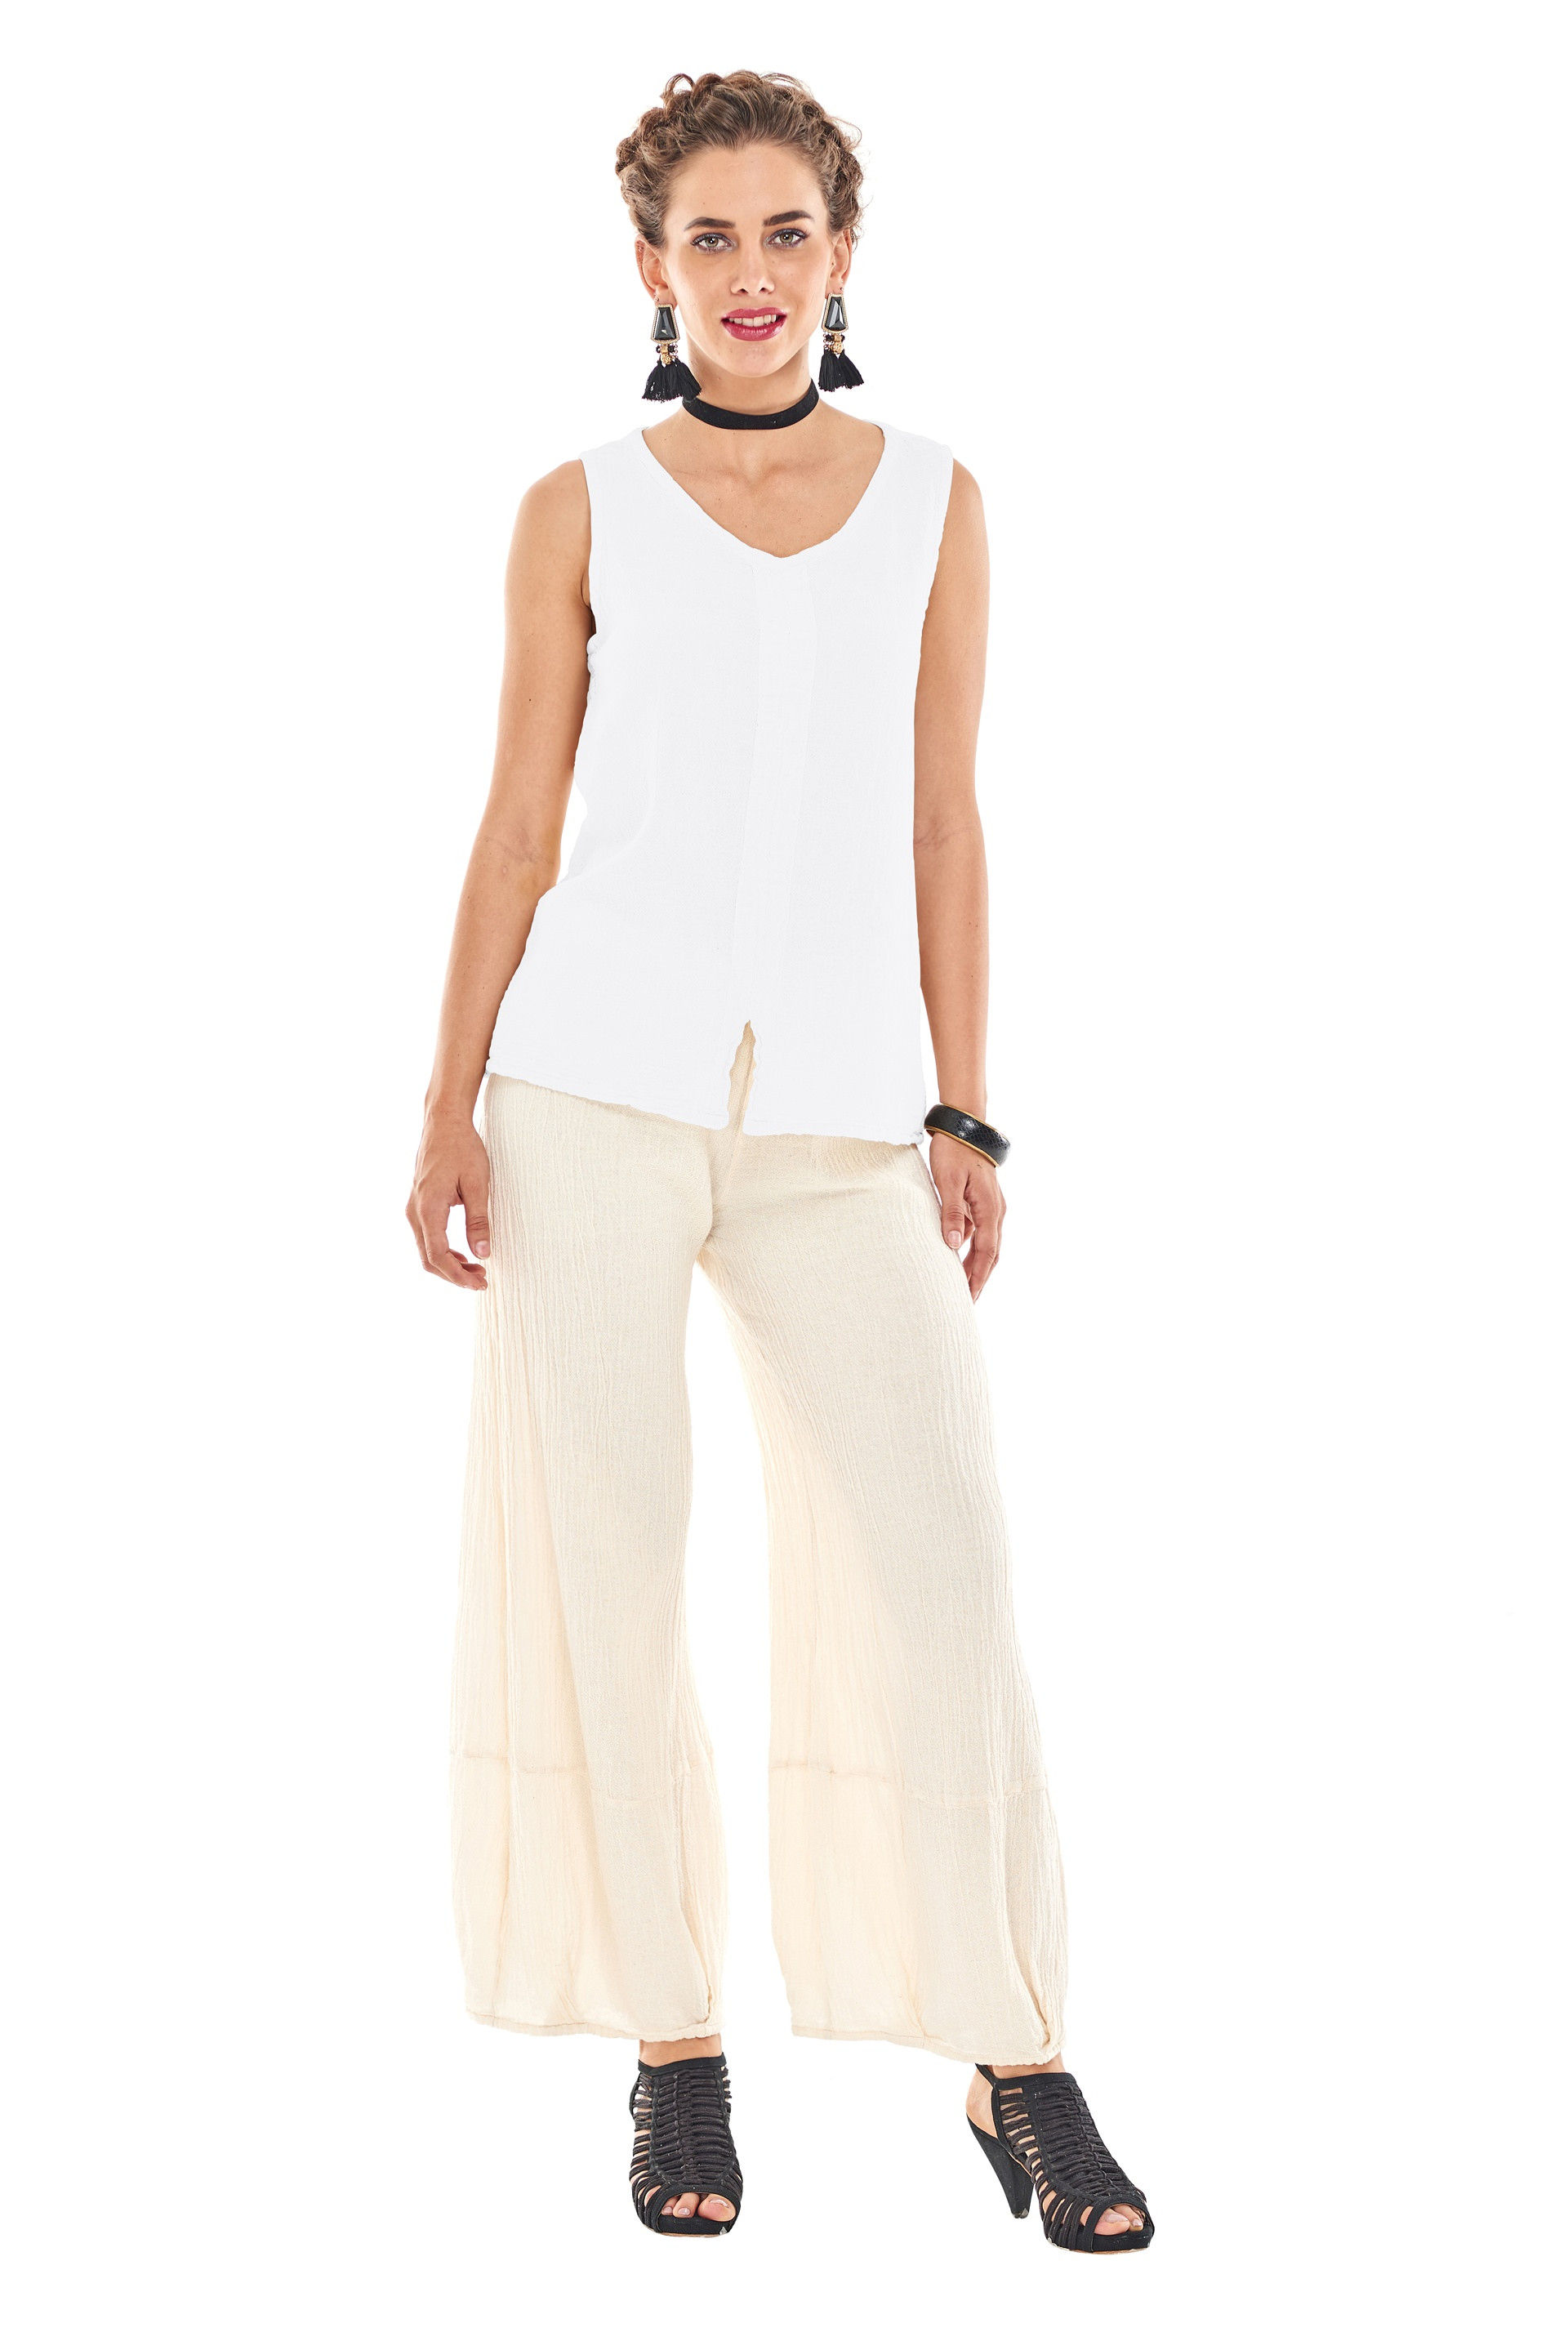 OMG - A simple, V-neck cotton gauze sleeveless top with a slight A-line cut.